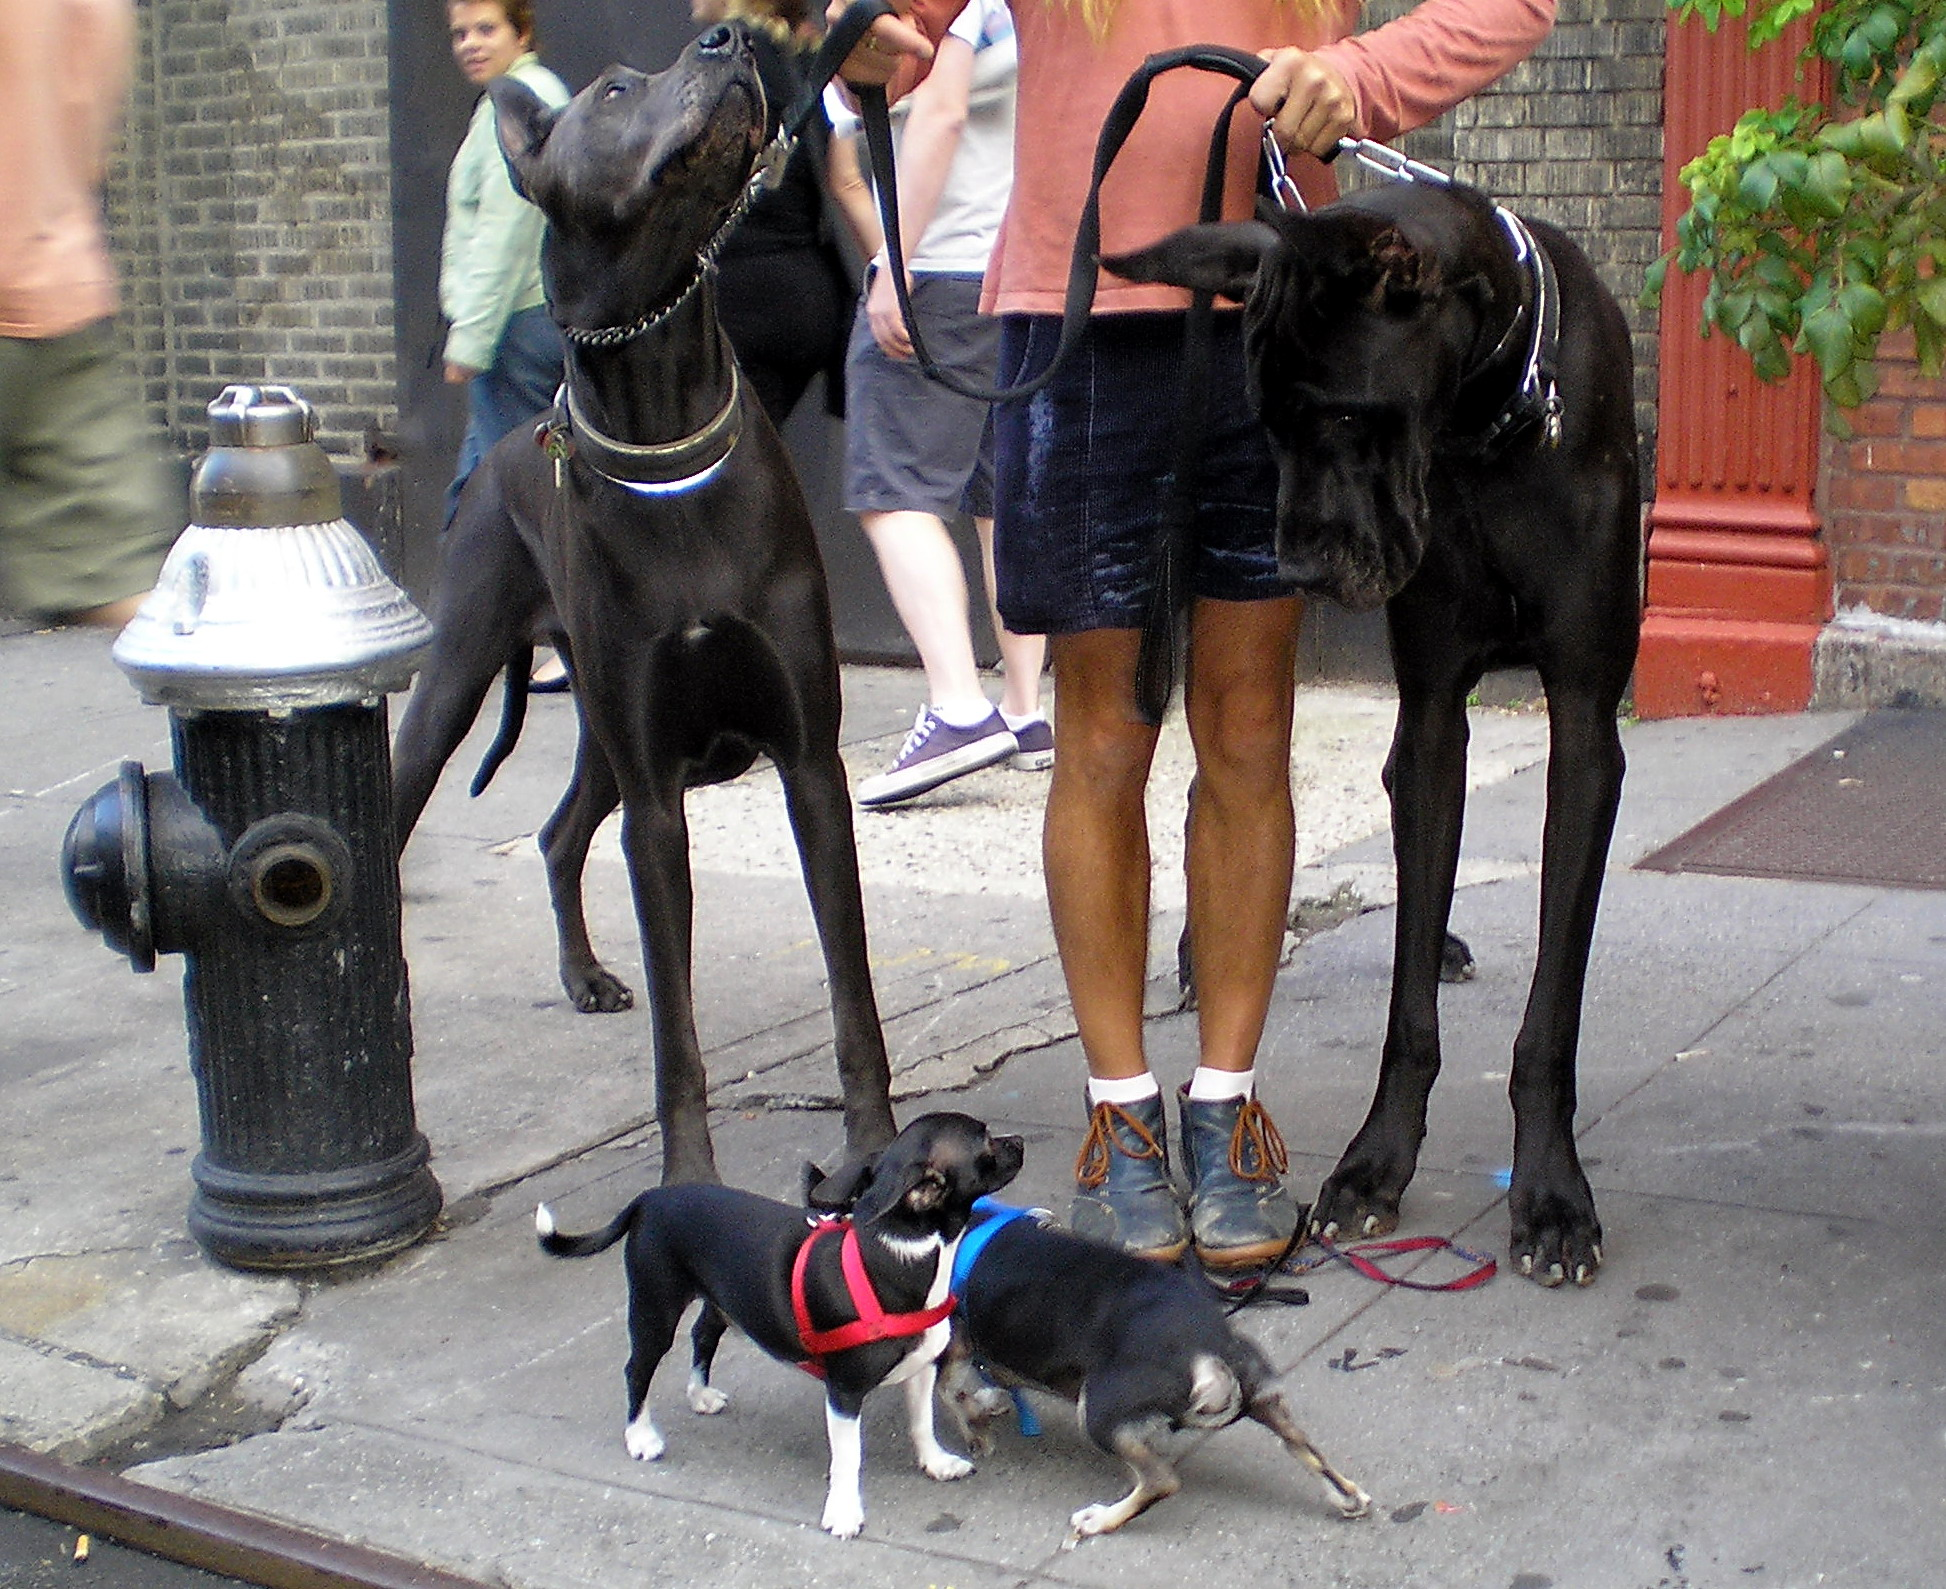 Two Great Danes and two Chihuahuas